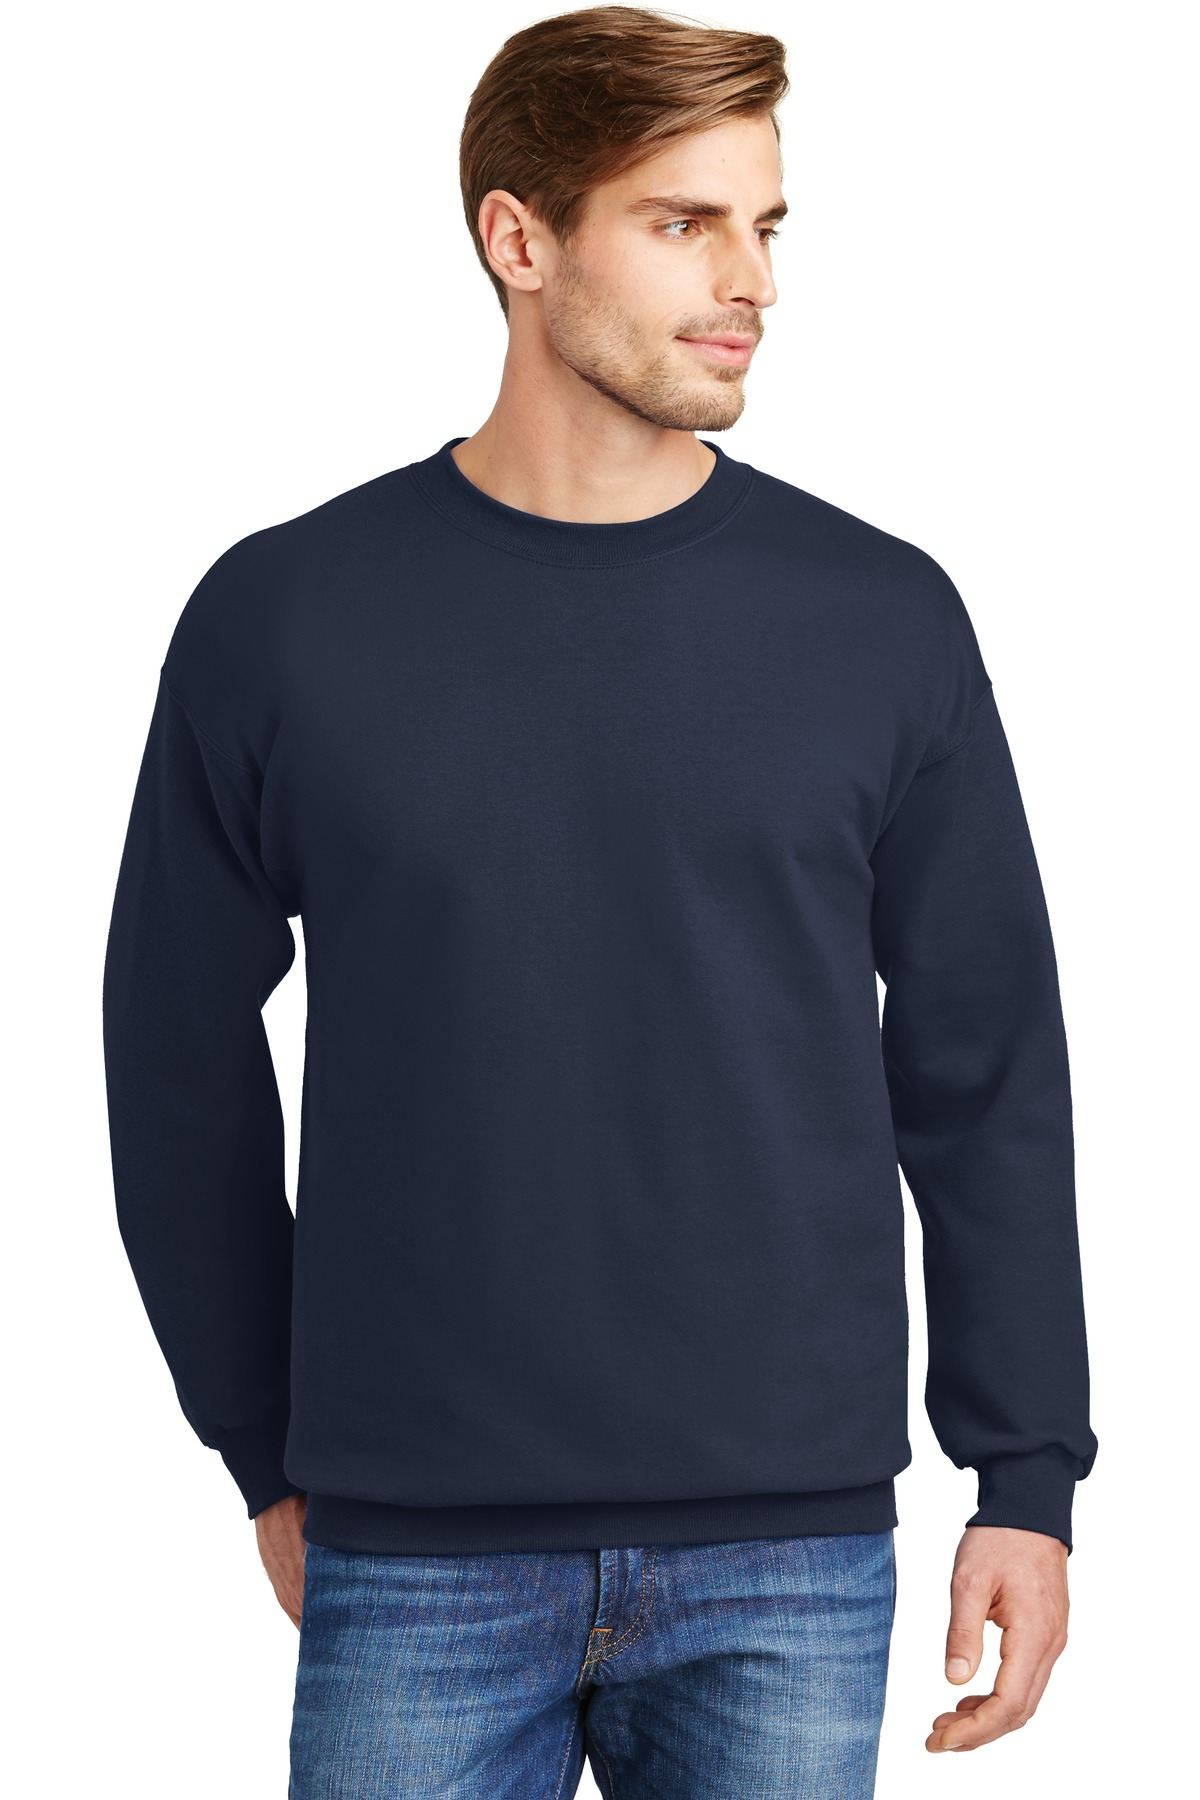 Hanes ®  Ultimate Cotton ®  - Crewneck Sweatshirt.  F260 - Navy